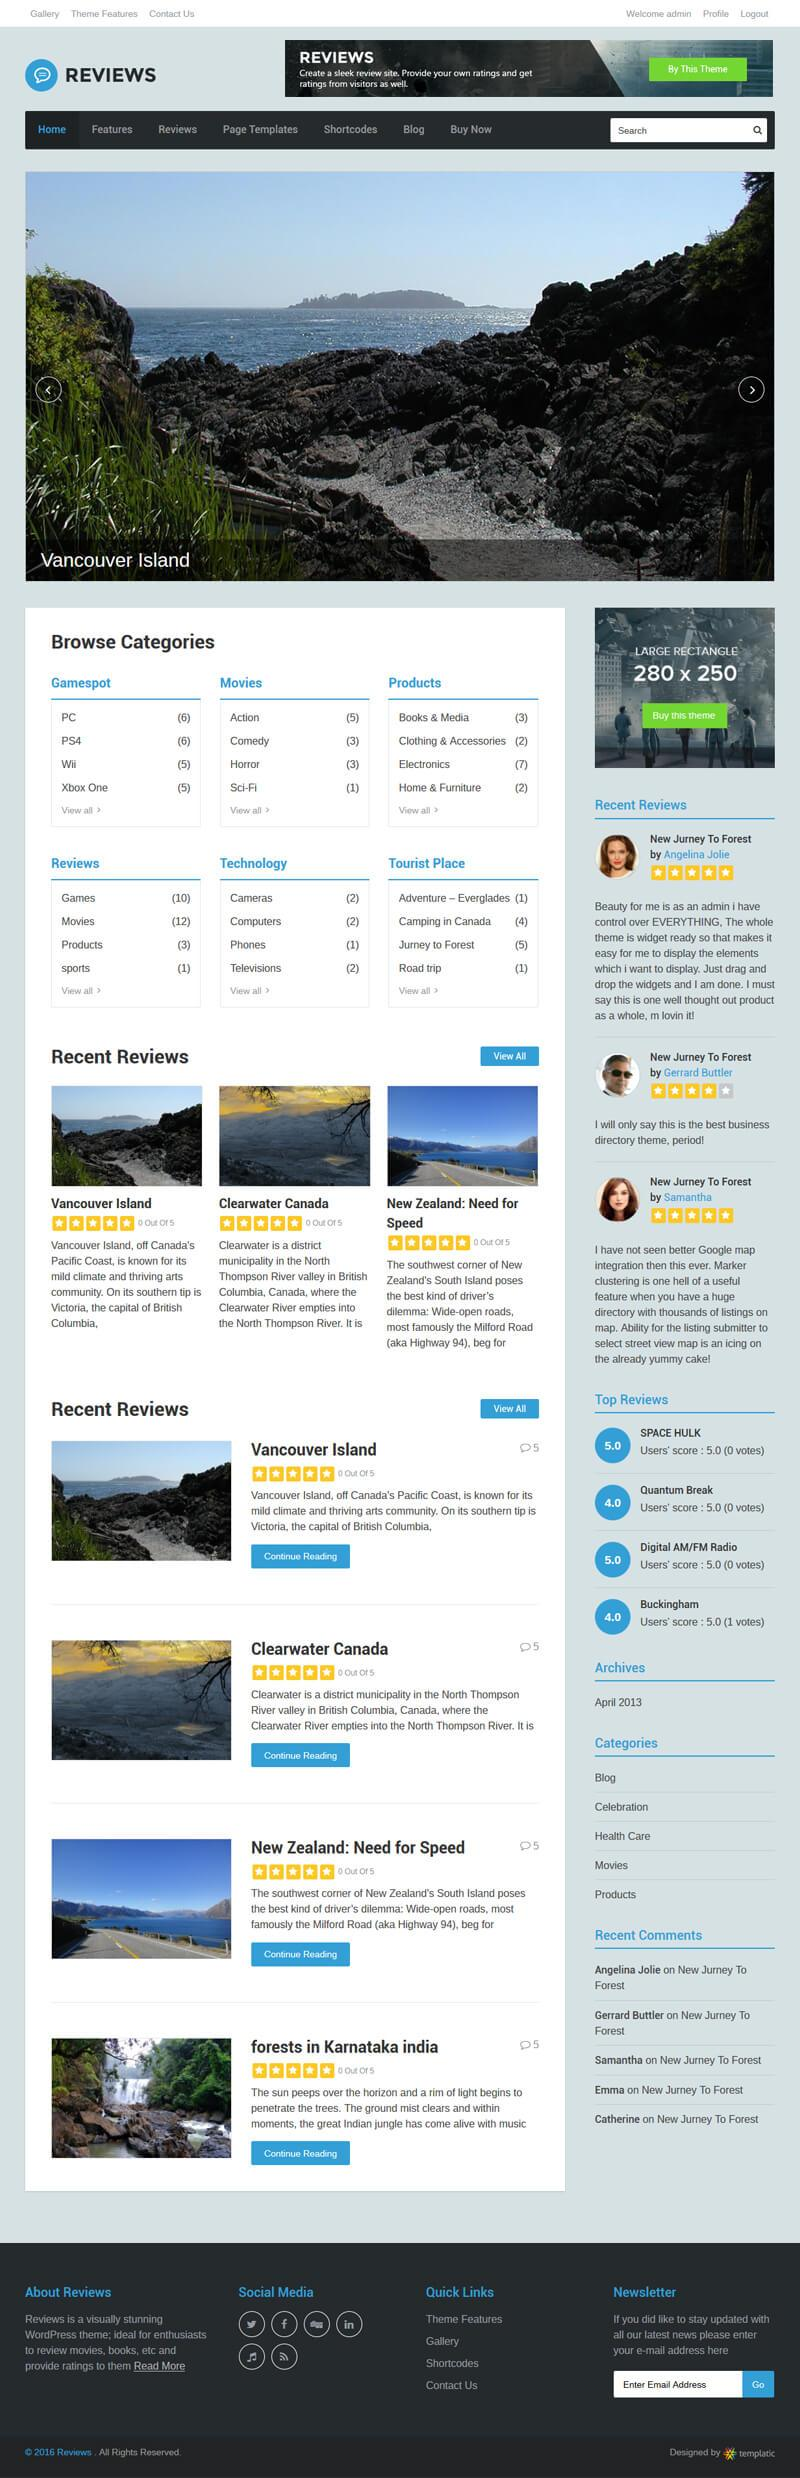 Ratings and reviews WordPress theme